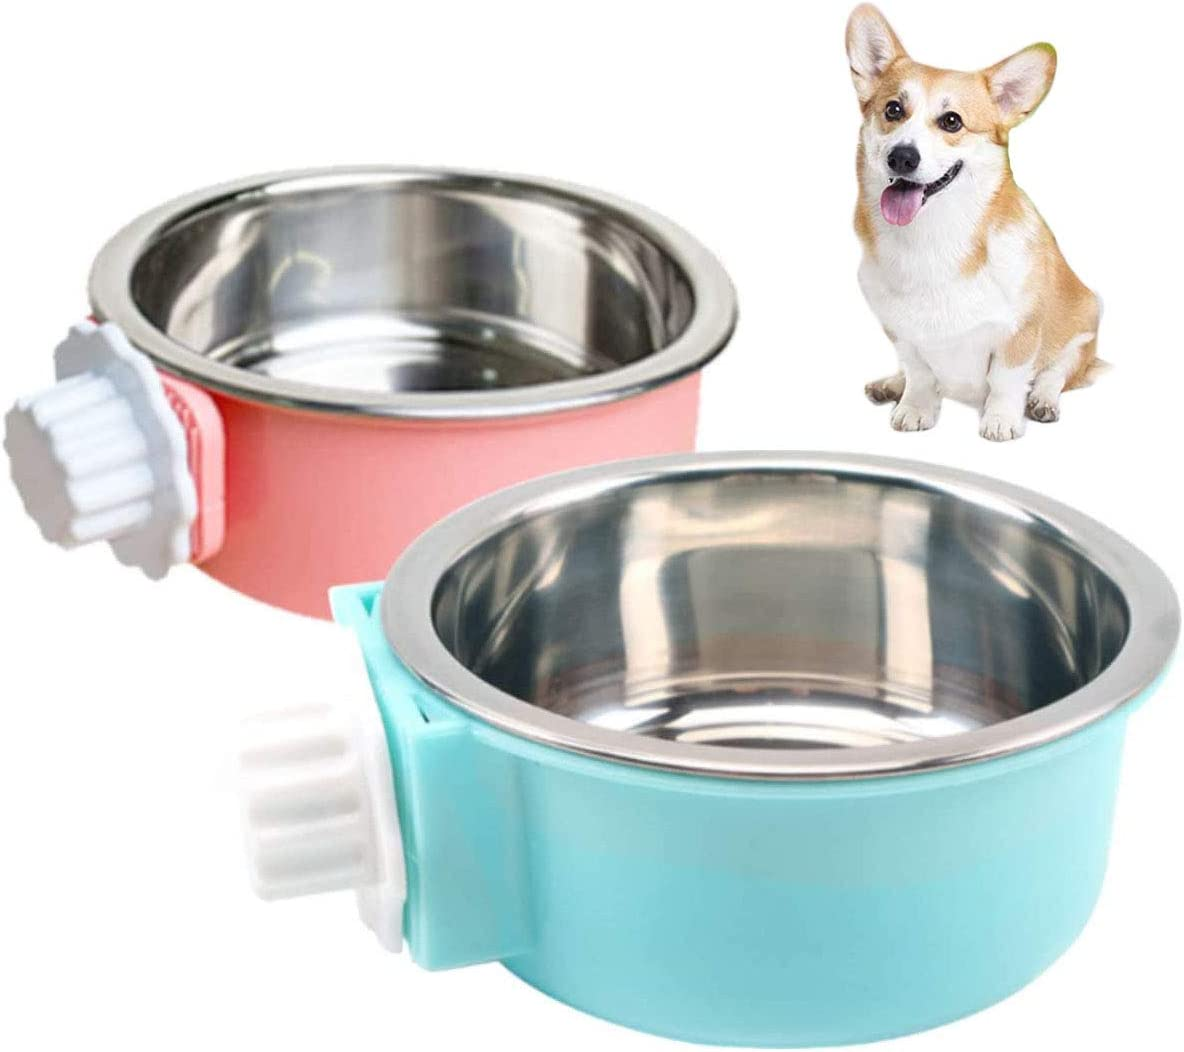 MCJS 2 Pcs Dog Crate Water Bowl No Spill, Stainless Steel Removable Food Bowl Crate Bowls, Water Bowl for Dog Crate Hanging Pet Cage Bowl Food Water Feeder Coop Cup for Cat Puppy Birds Pets